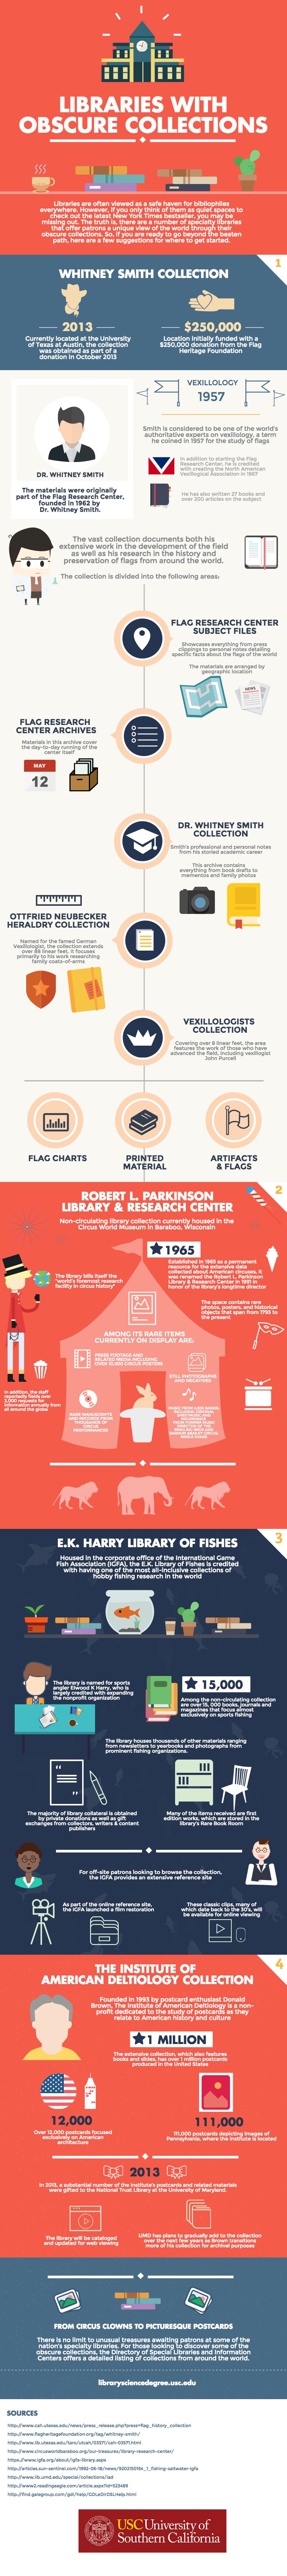 An infographic about libraries' obscure collections by the University of Southern California